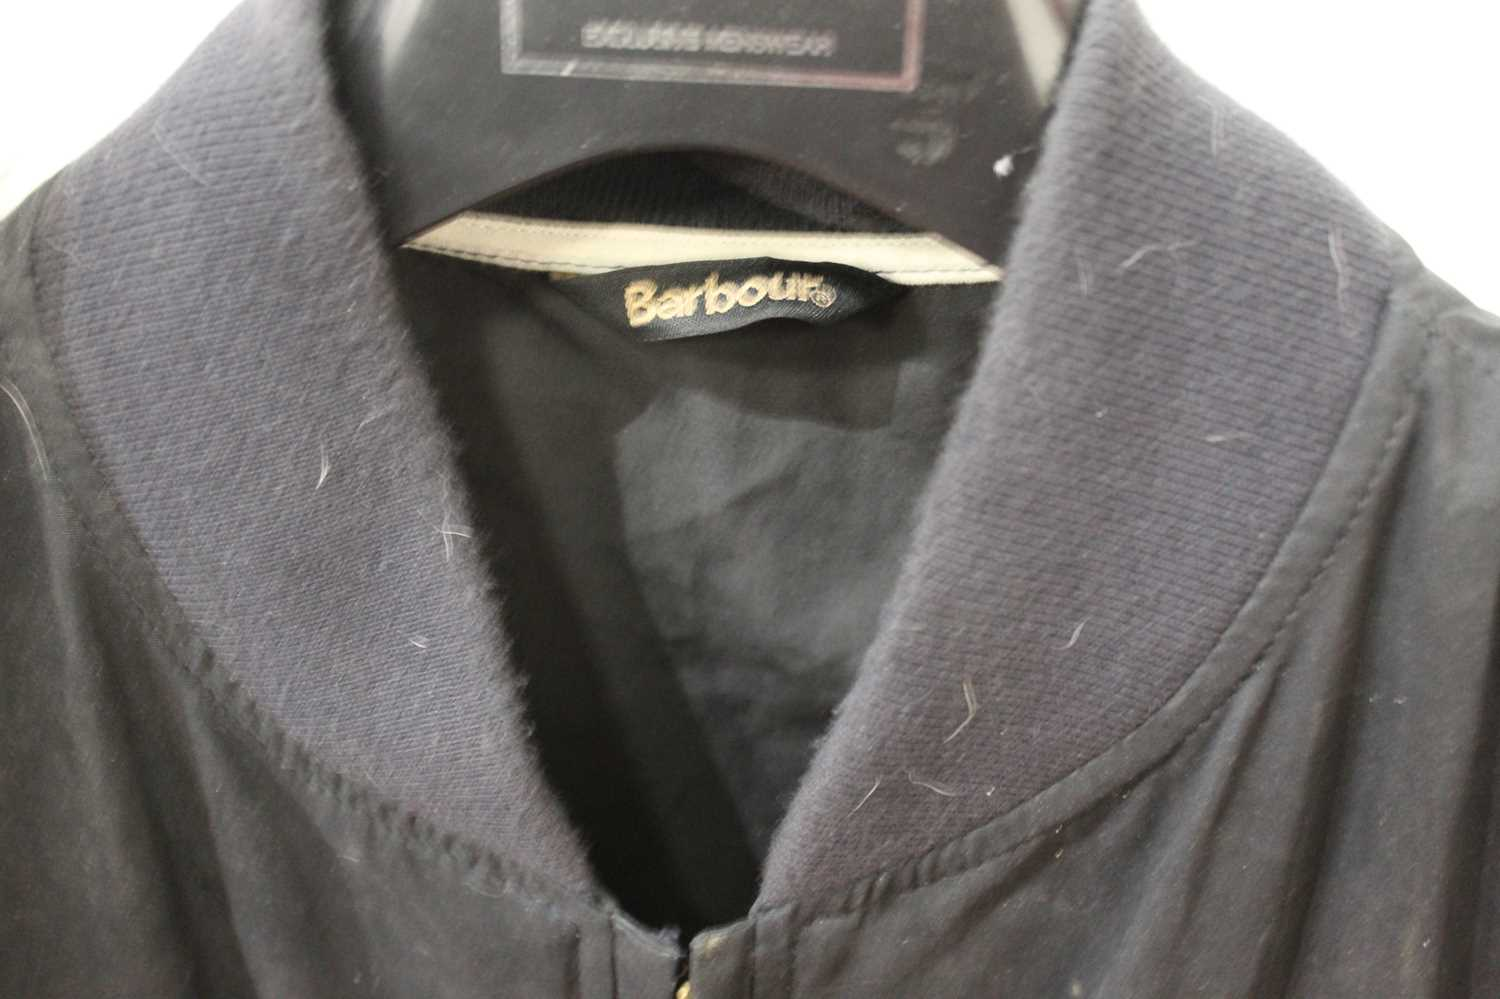 A gent's Barbour jacket, size medium - Image 2 of 3